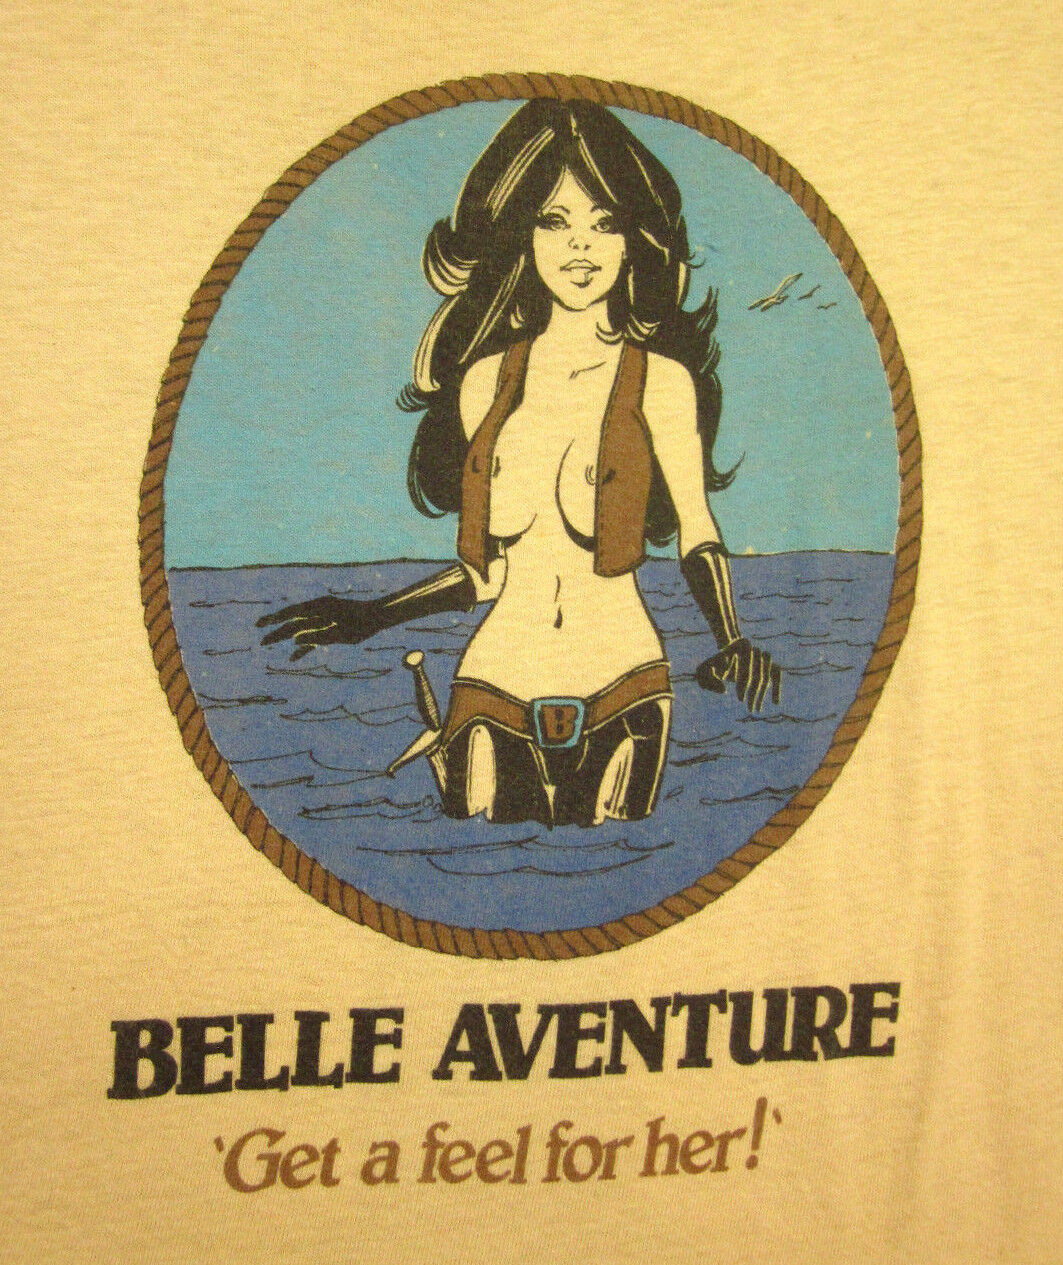 BELLE AVENTURE vtg tall ships T shirt XL sexy French comic-book yacht tee 1980s